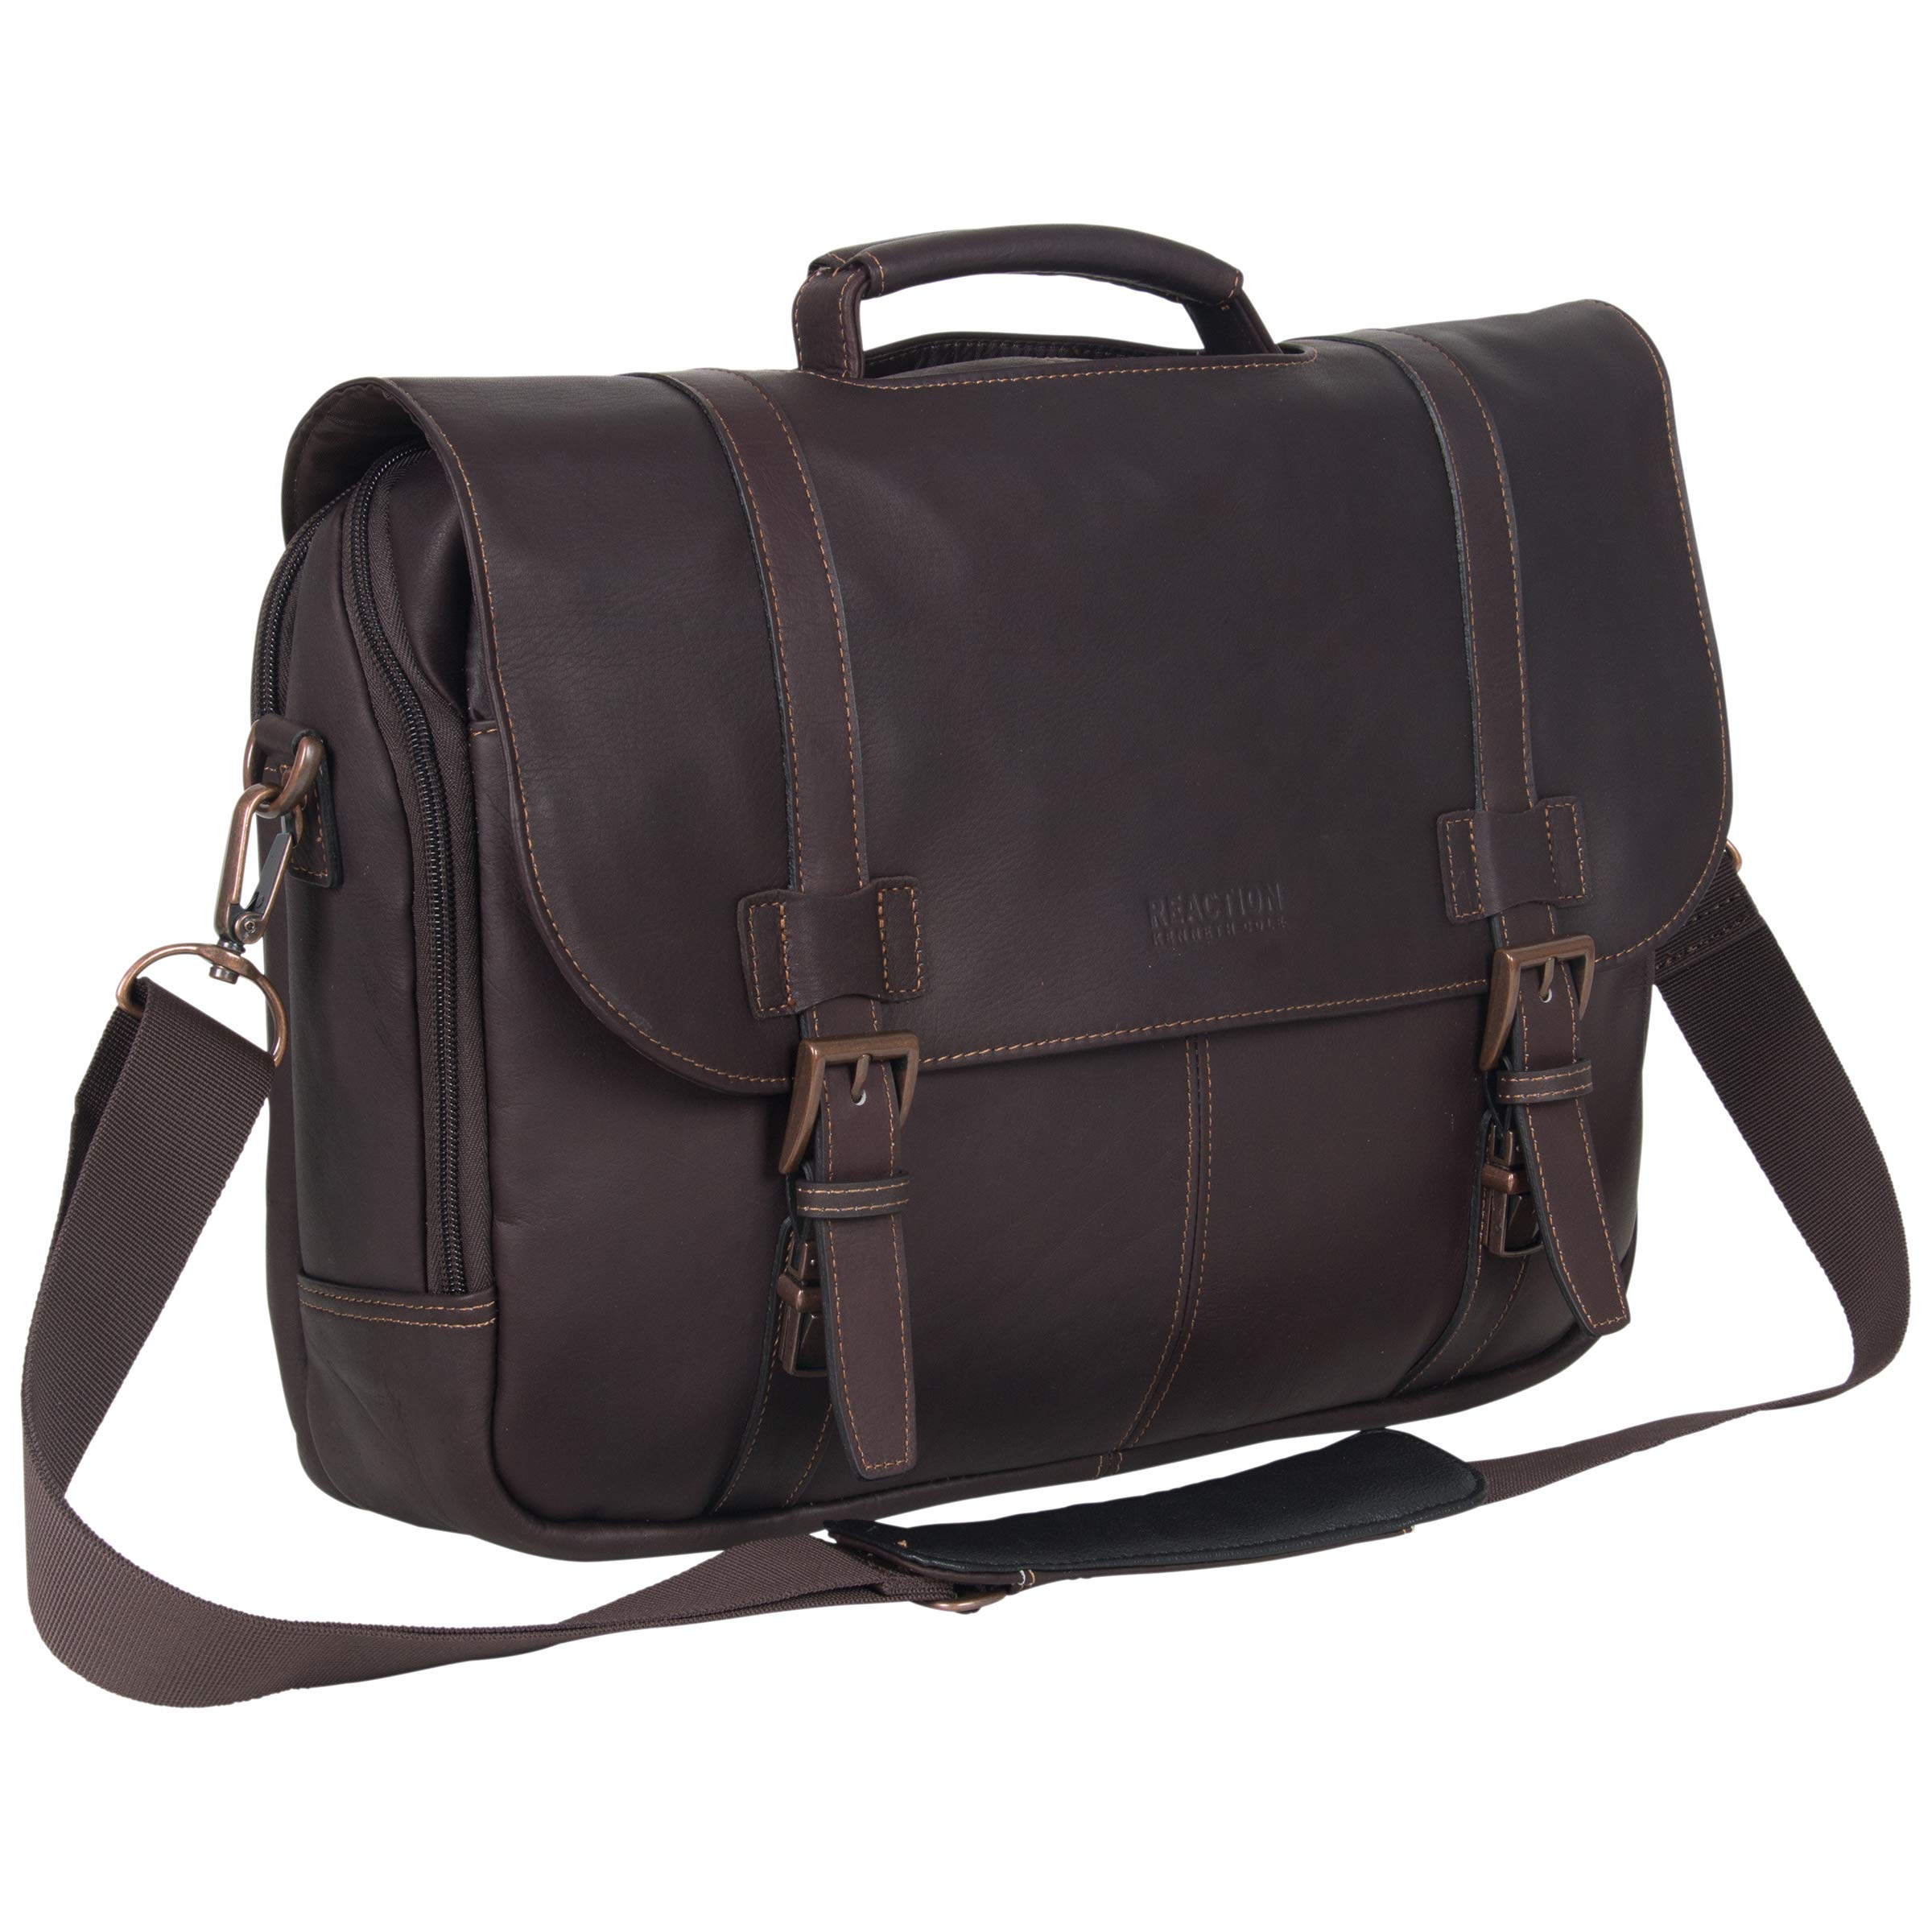 Kenneth Cole Reaction Show Full-Grain Colombian Leather Dual Compartment Flapover 15.6-inch Laptop Business Portfolio, Dark Brown by Kenneth Cole REACTION